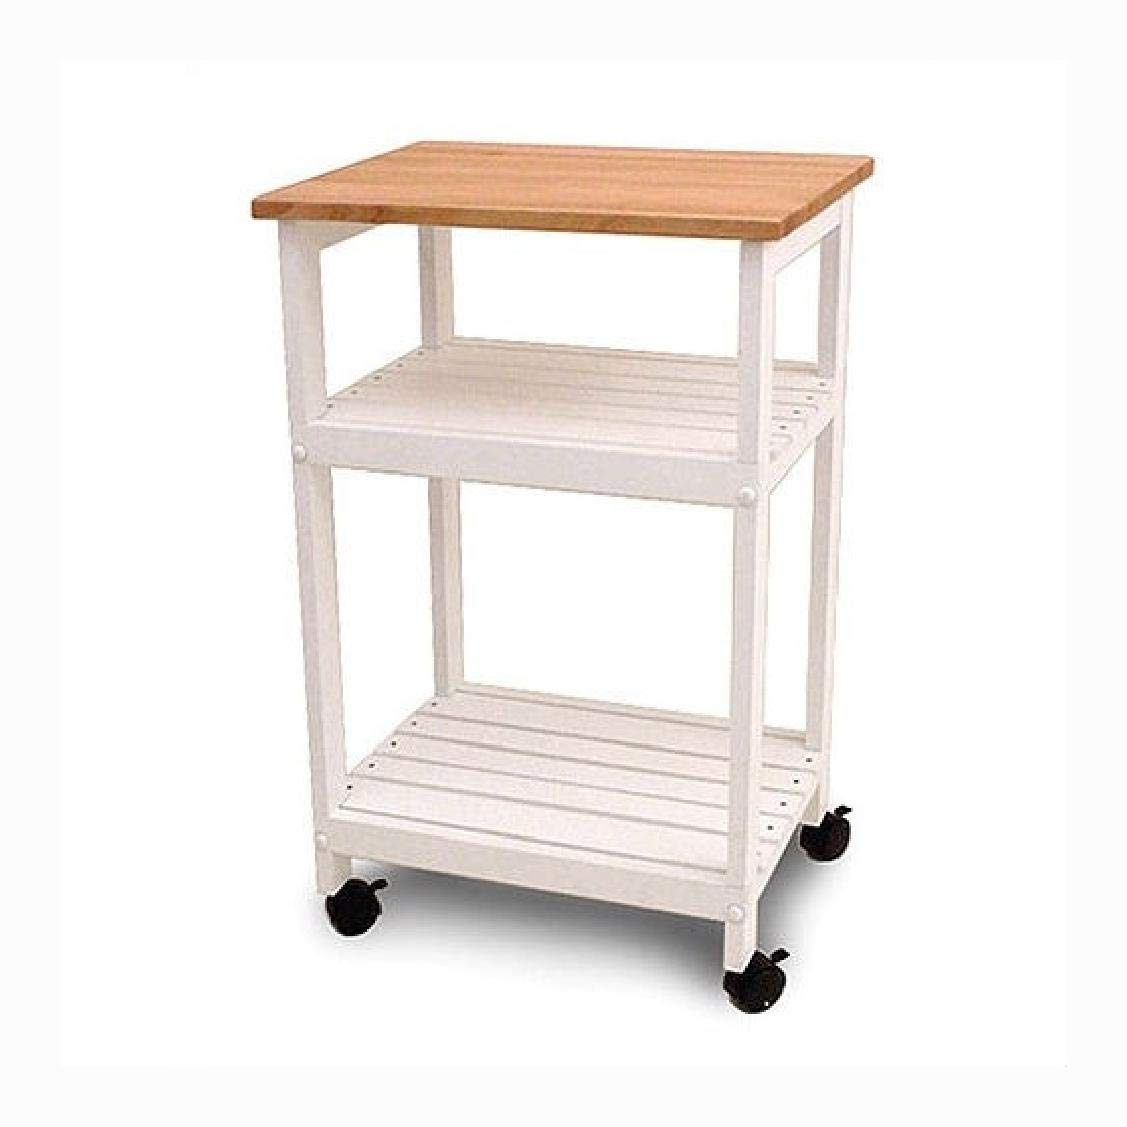 HEATAPPLY White Kitchen Microwave Cart with Butcher Block Top & Locking Caster, White Kitchen Microwave Cart with Butcher Block Top & Locking Casters by HEATAPPLY